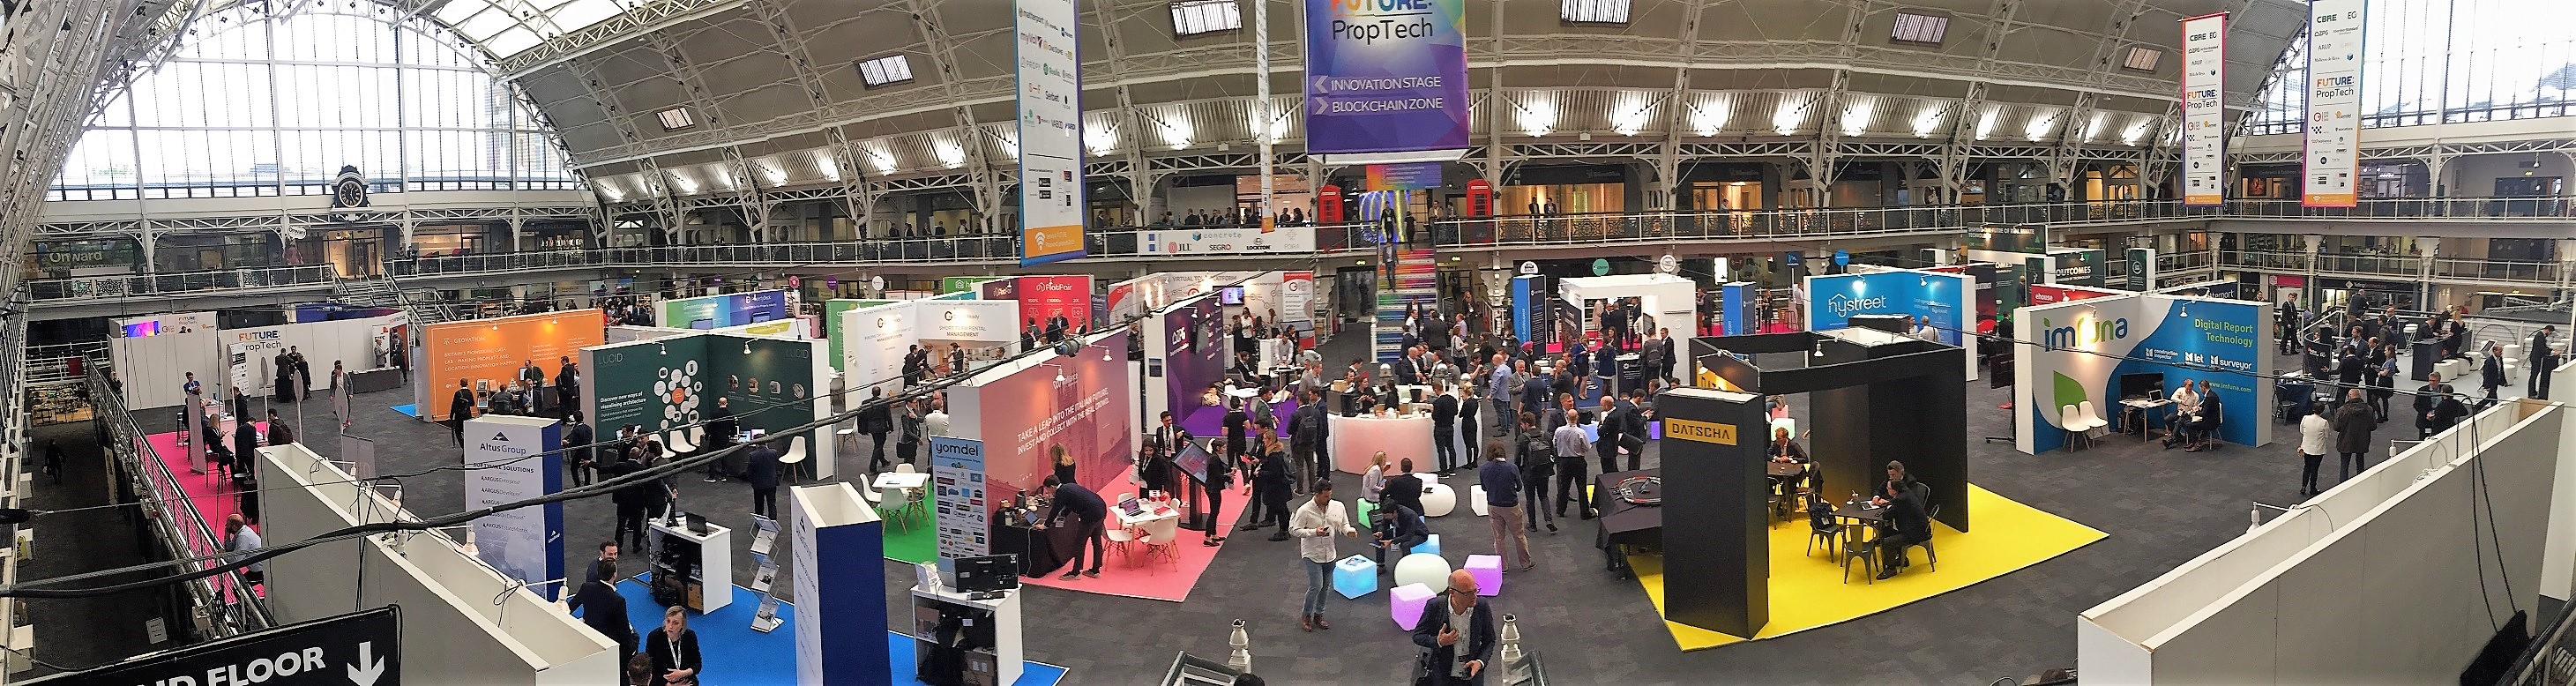 Future Proptech 2018 Panoramic Cropped